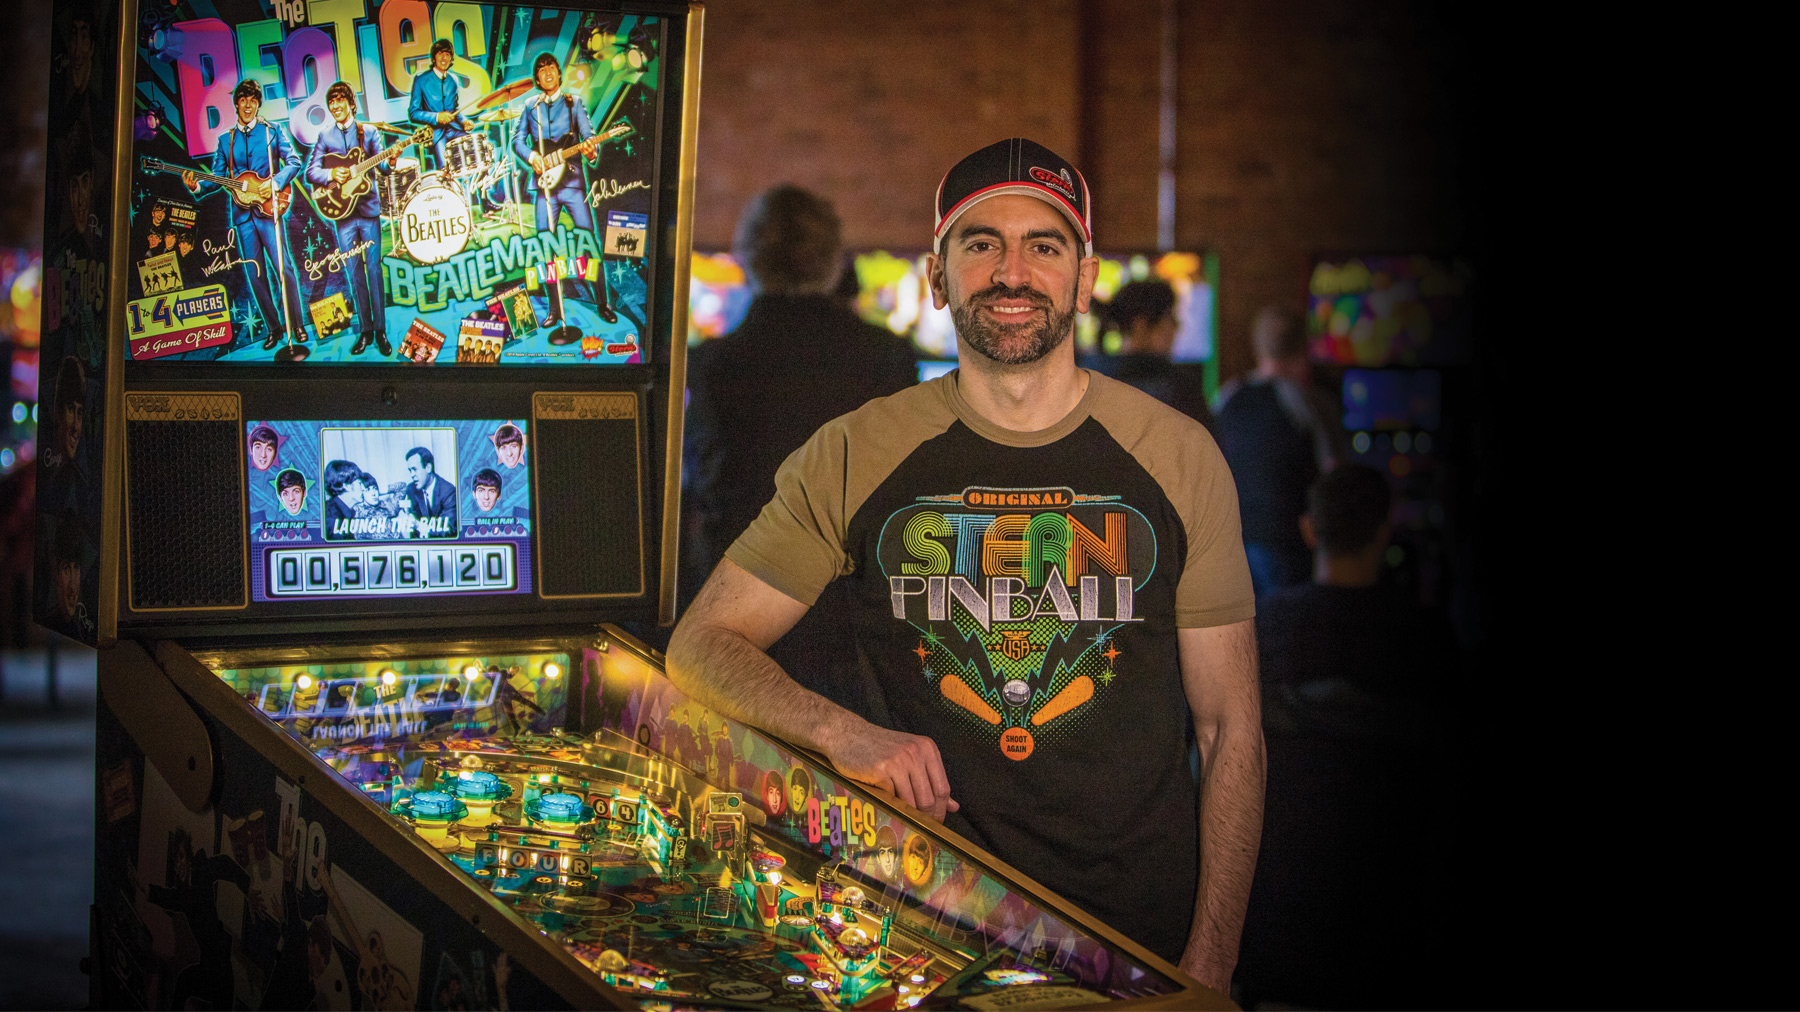 Zach Sharpe stands beside a 'Beatlemania'-themed pinball machine